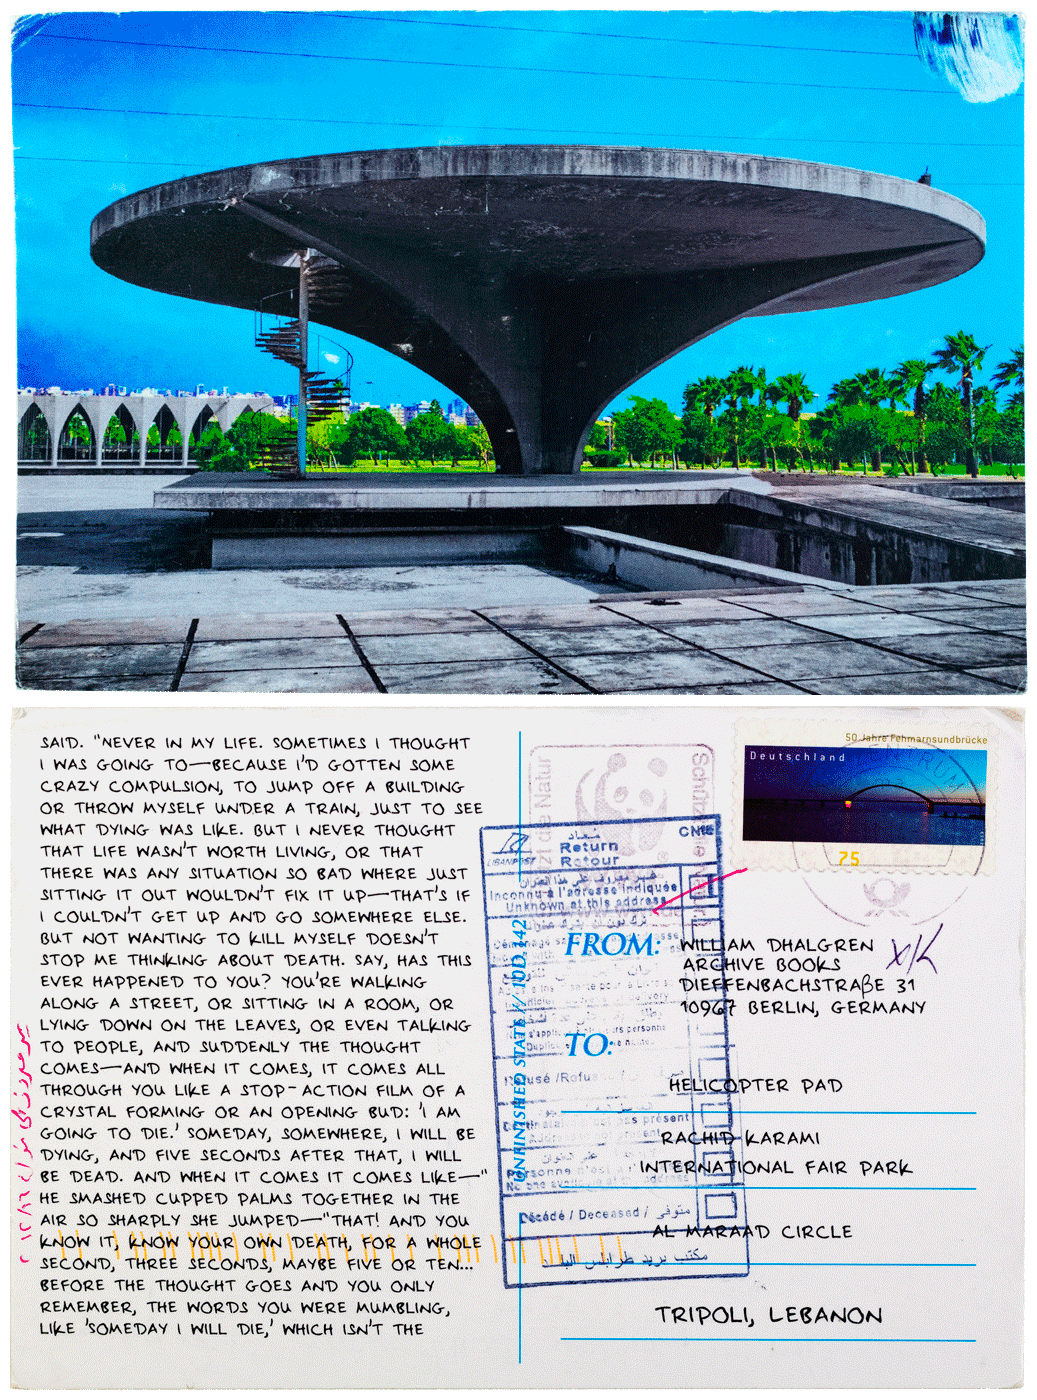 Unfinished State helipad postcard, Oscar Niemeyer